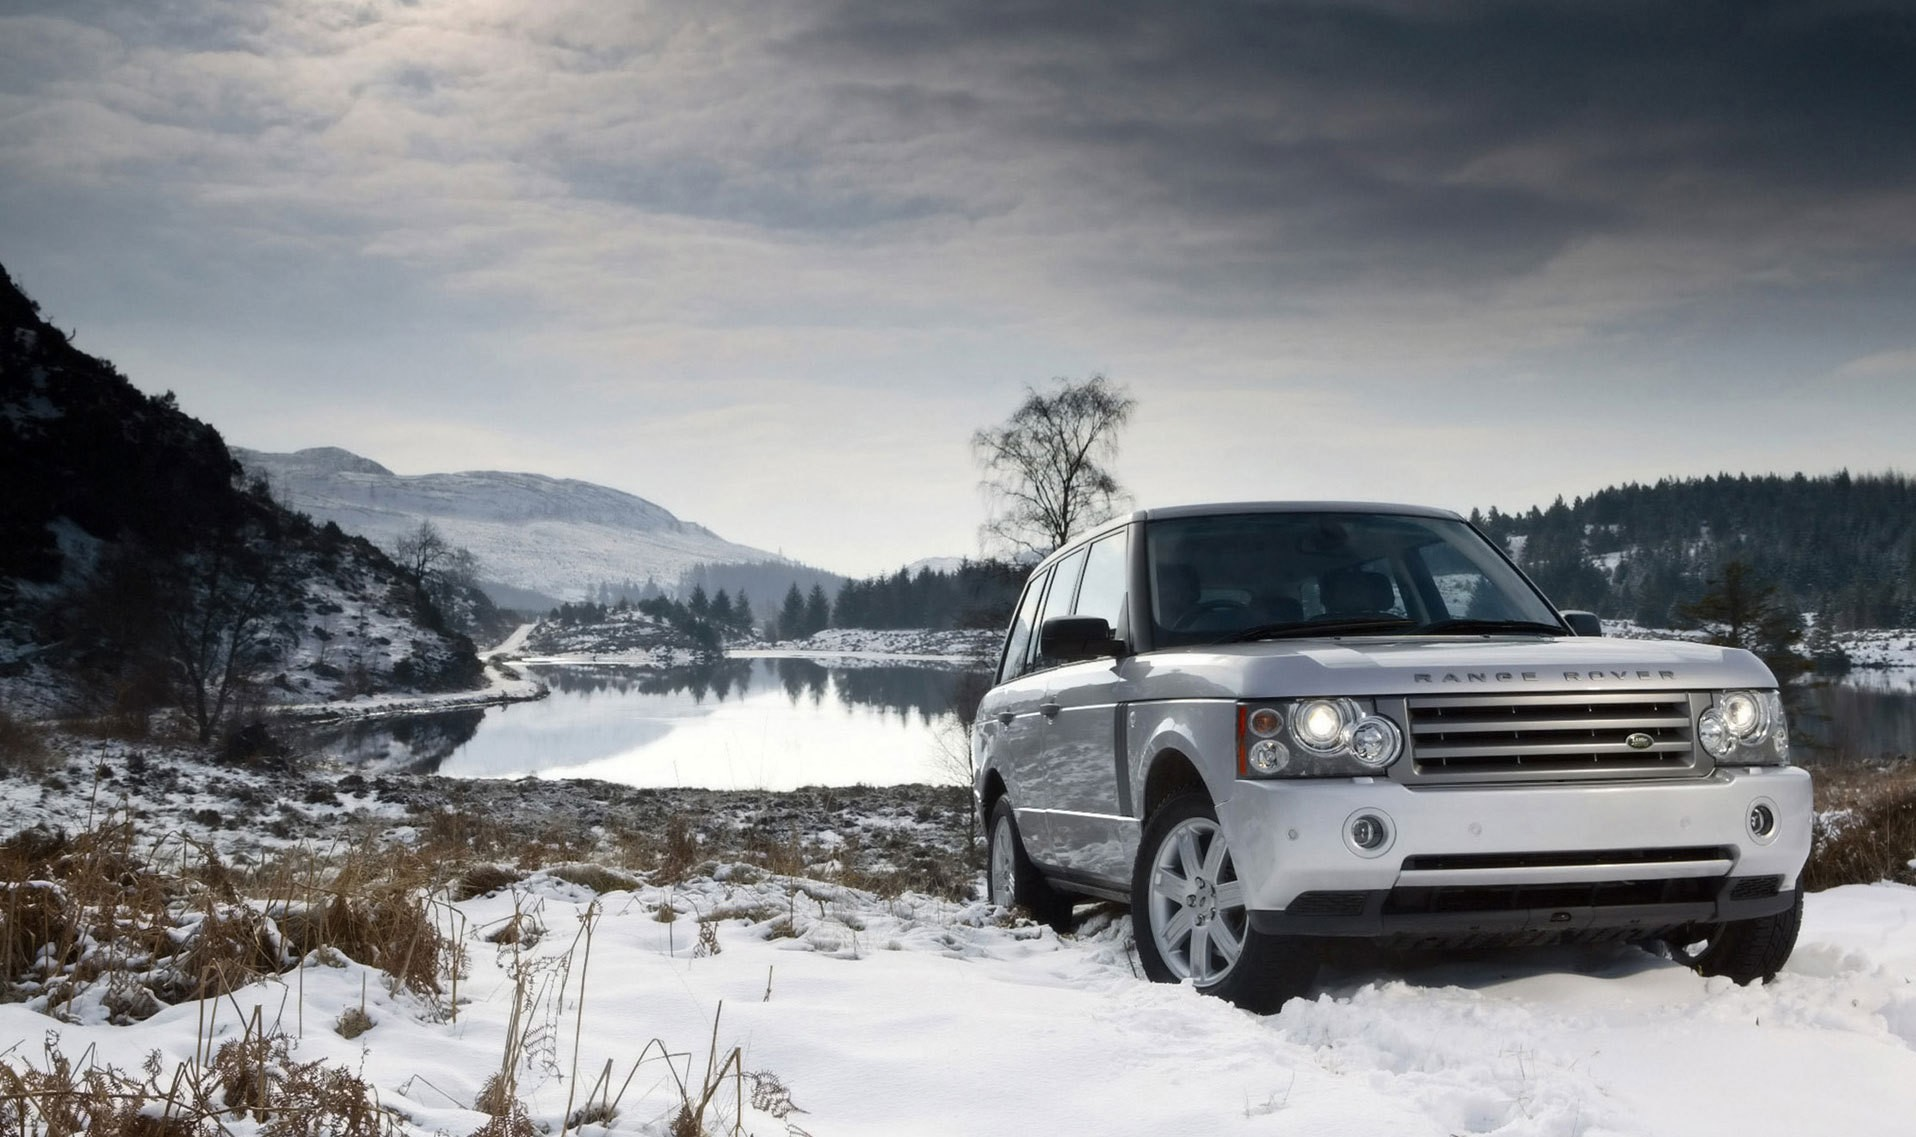 snow cars Range Rover HD Wallpaper